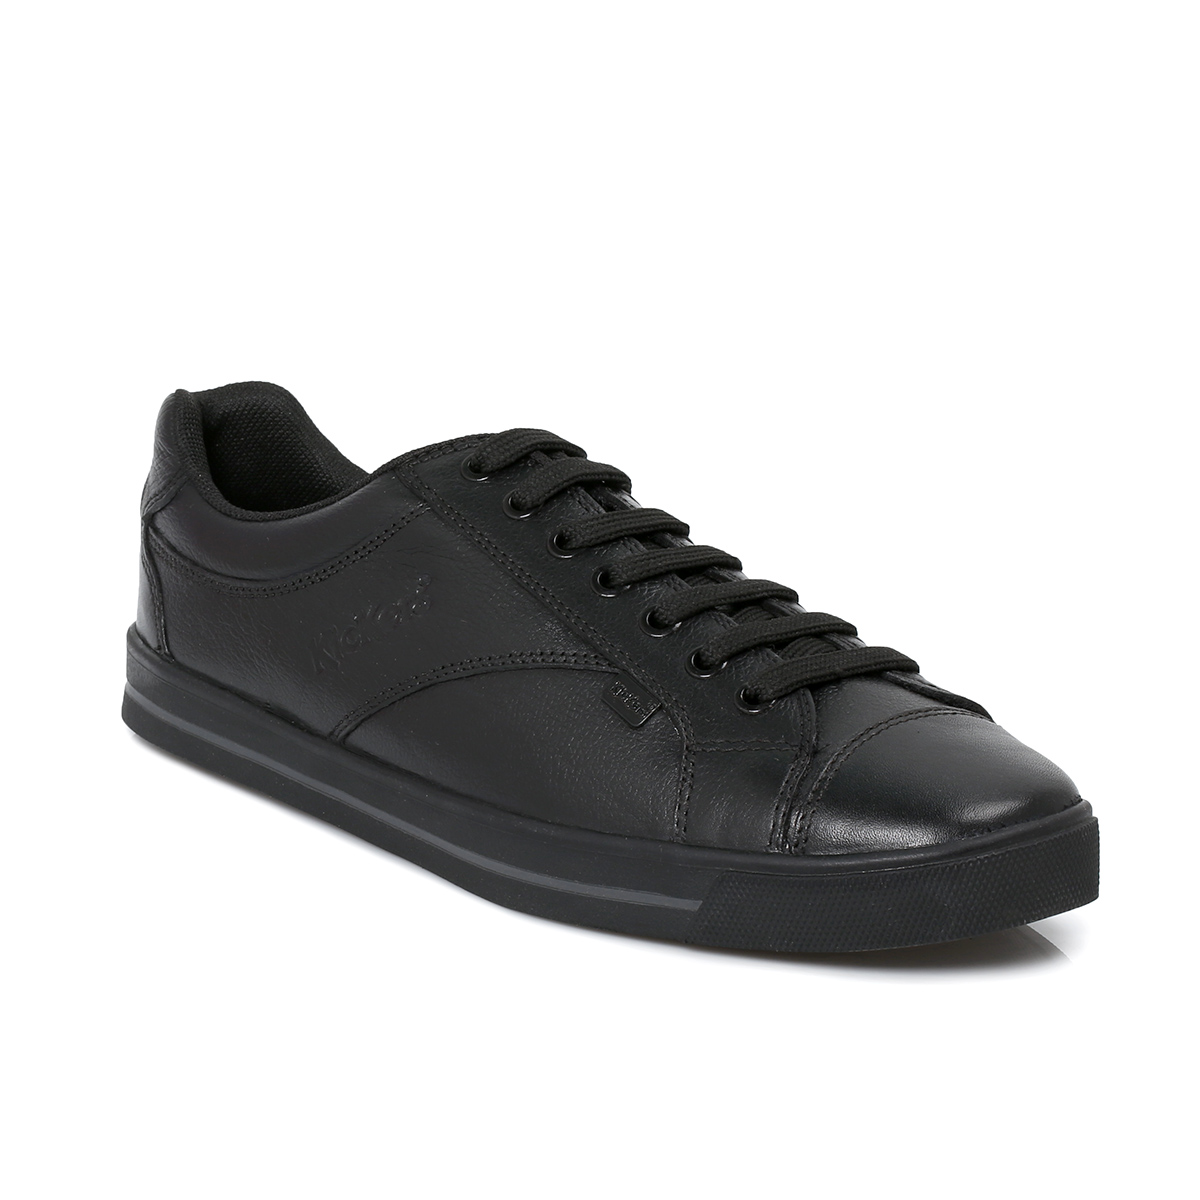 Kickers Wolny Black Lace Leather Boys Mens School Shoes ...